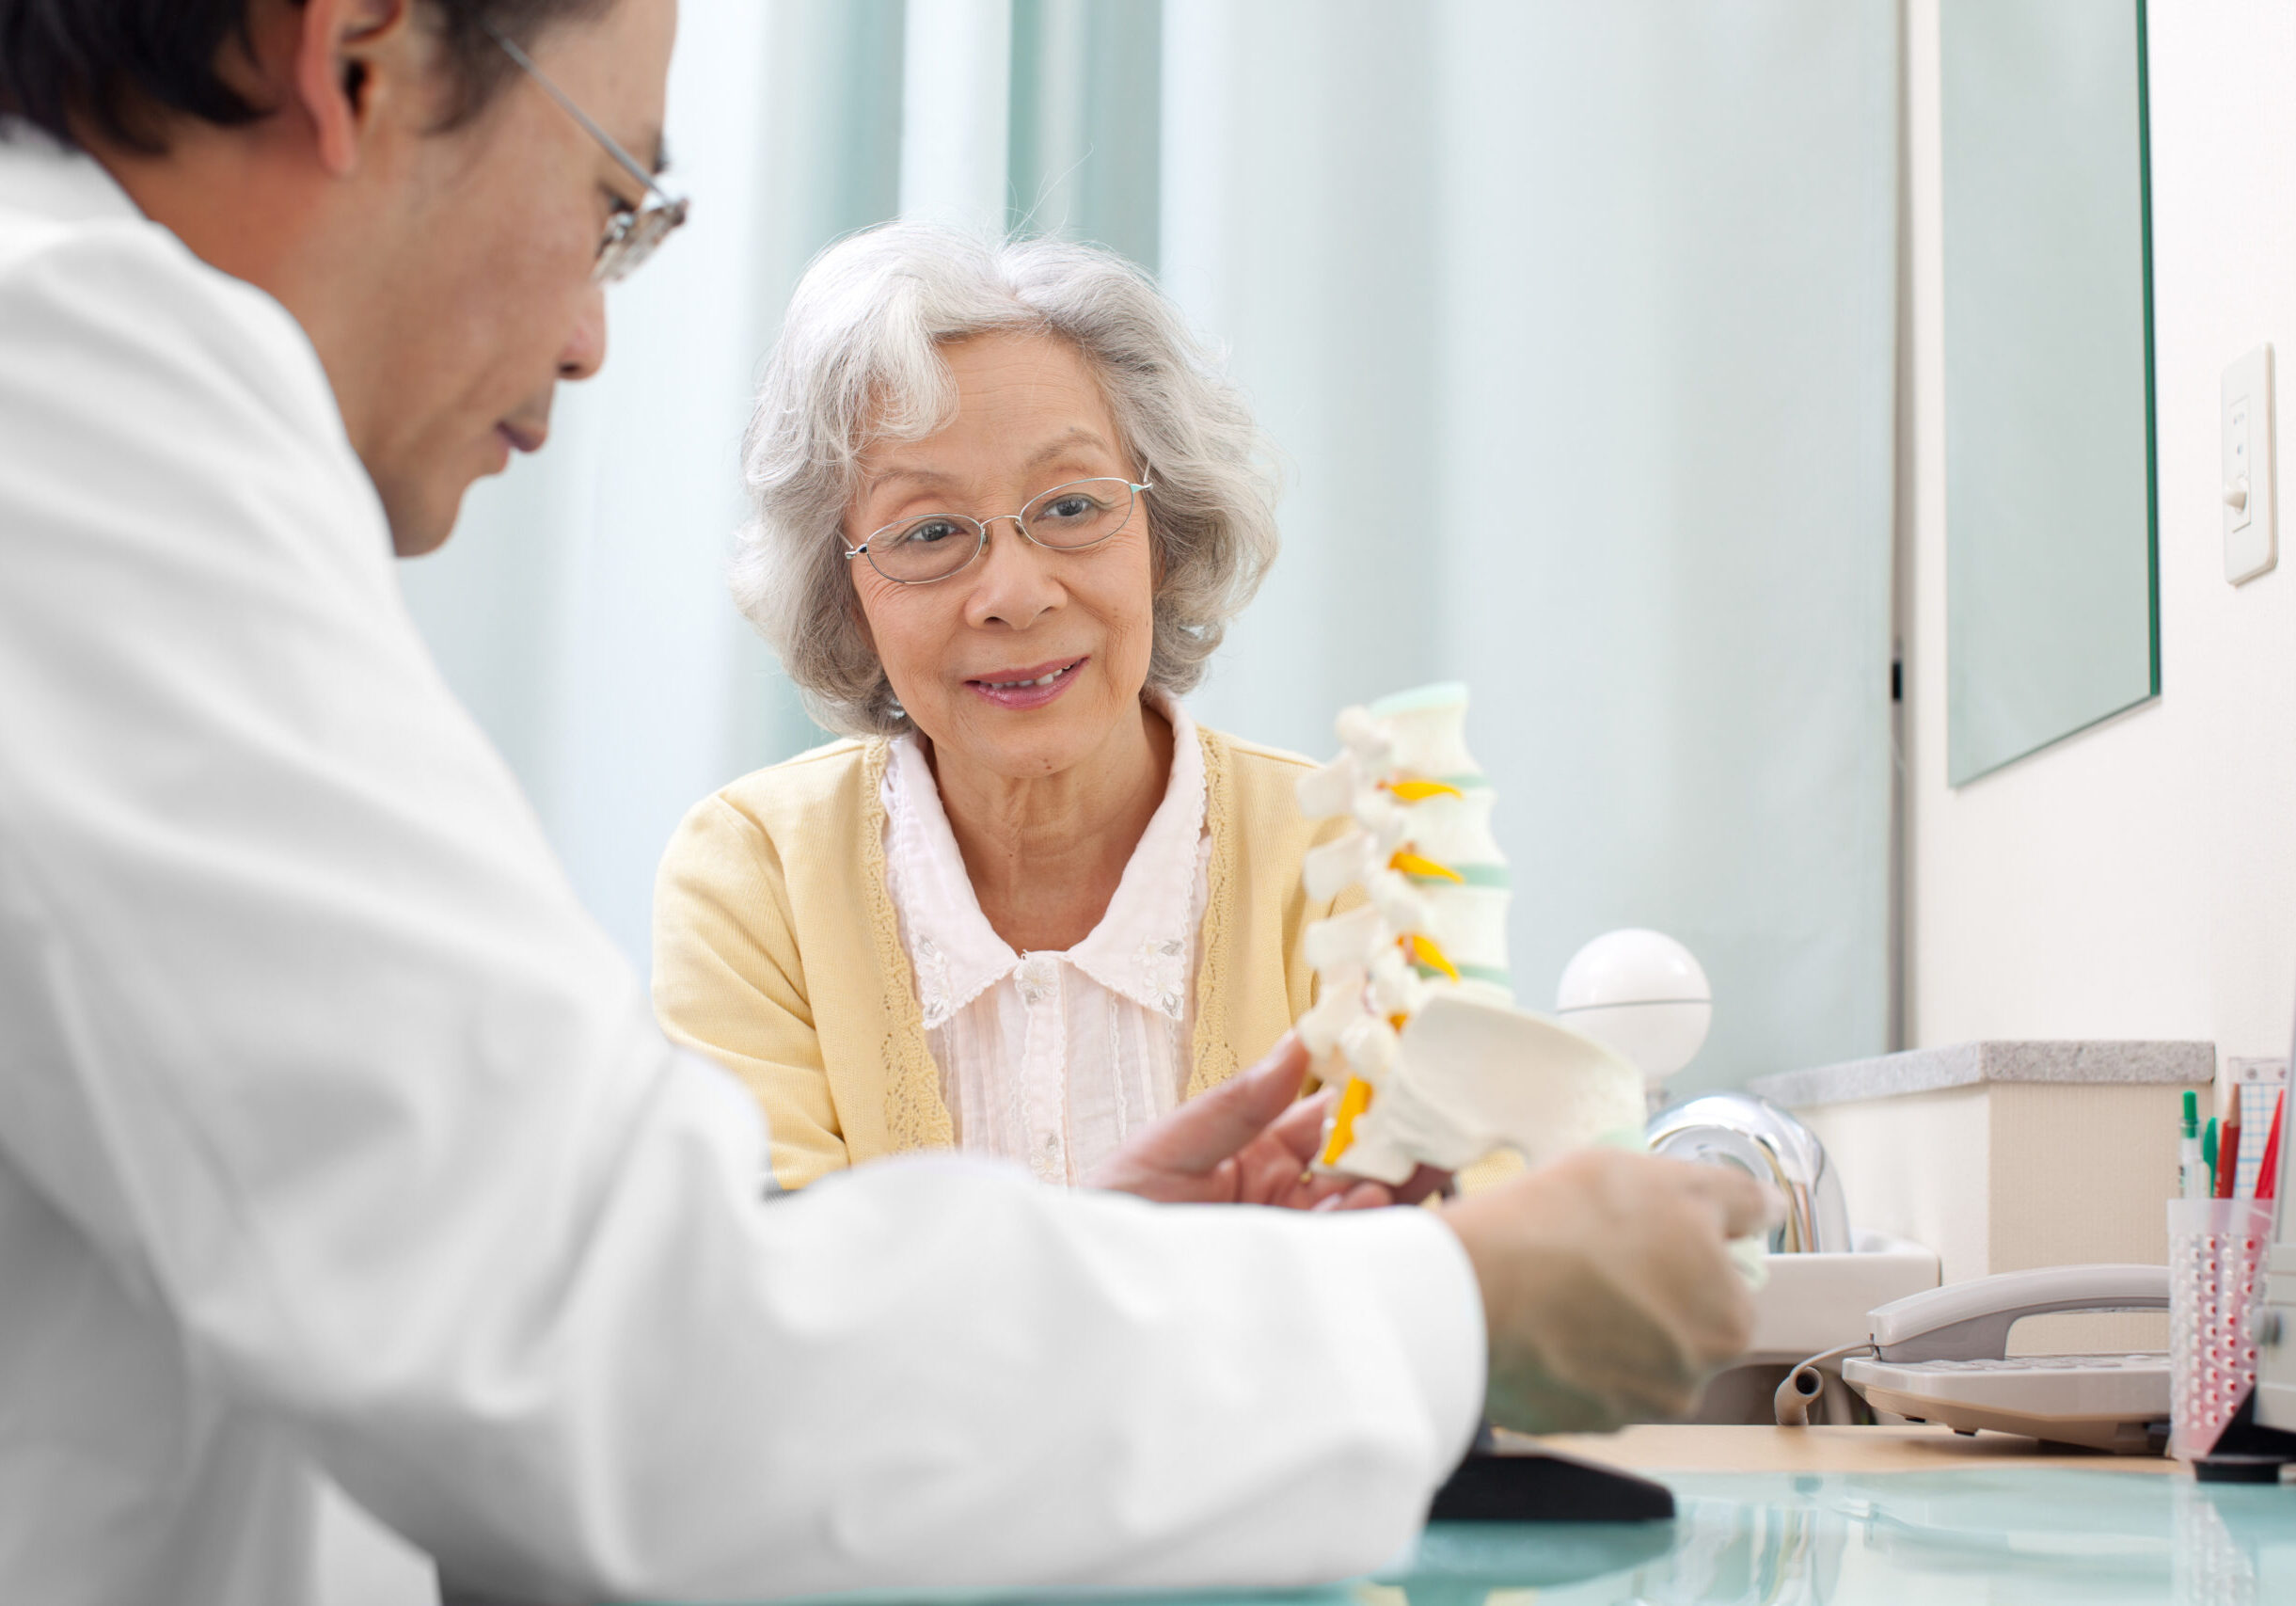 Senior woman visiting the doctor in his office. Doctor explaining spine problem to her using a bone model.